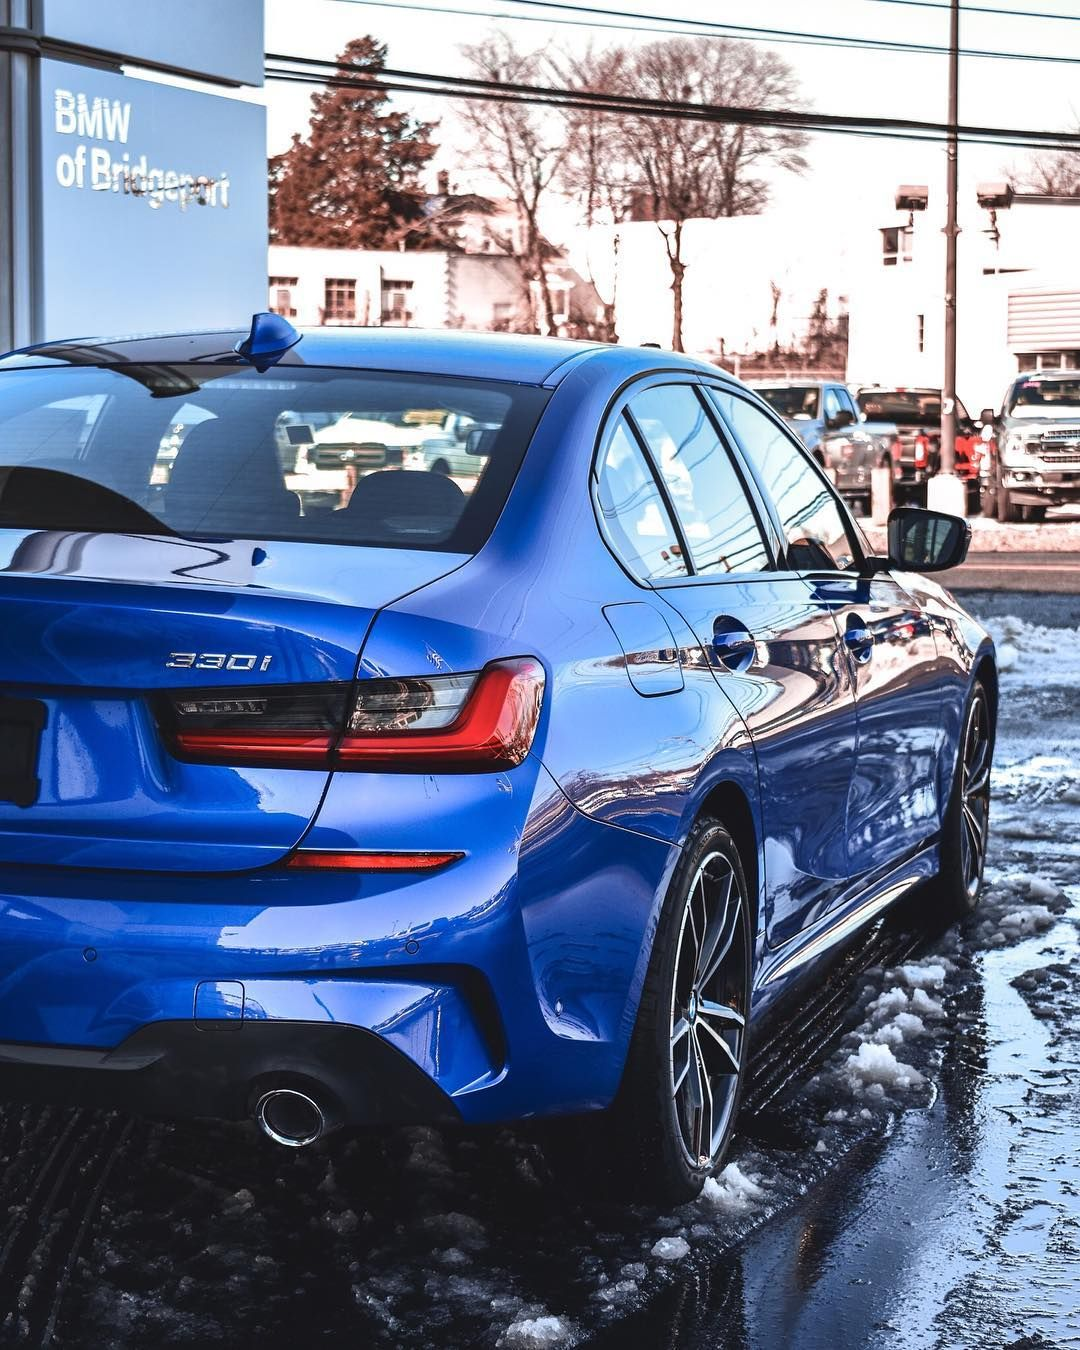 Here S Another Look At Our First G20 Bmw 3 Series Would You Go With The Base Model Or Would You Upgrade To This Aggressive M Sport Bmw Bmw 3 Series Bmw Cars